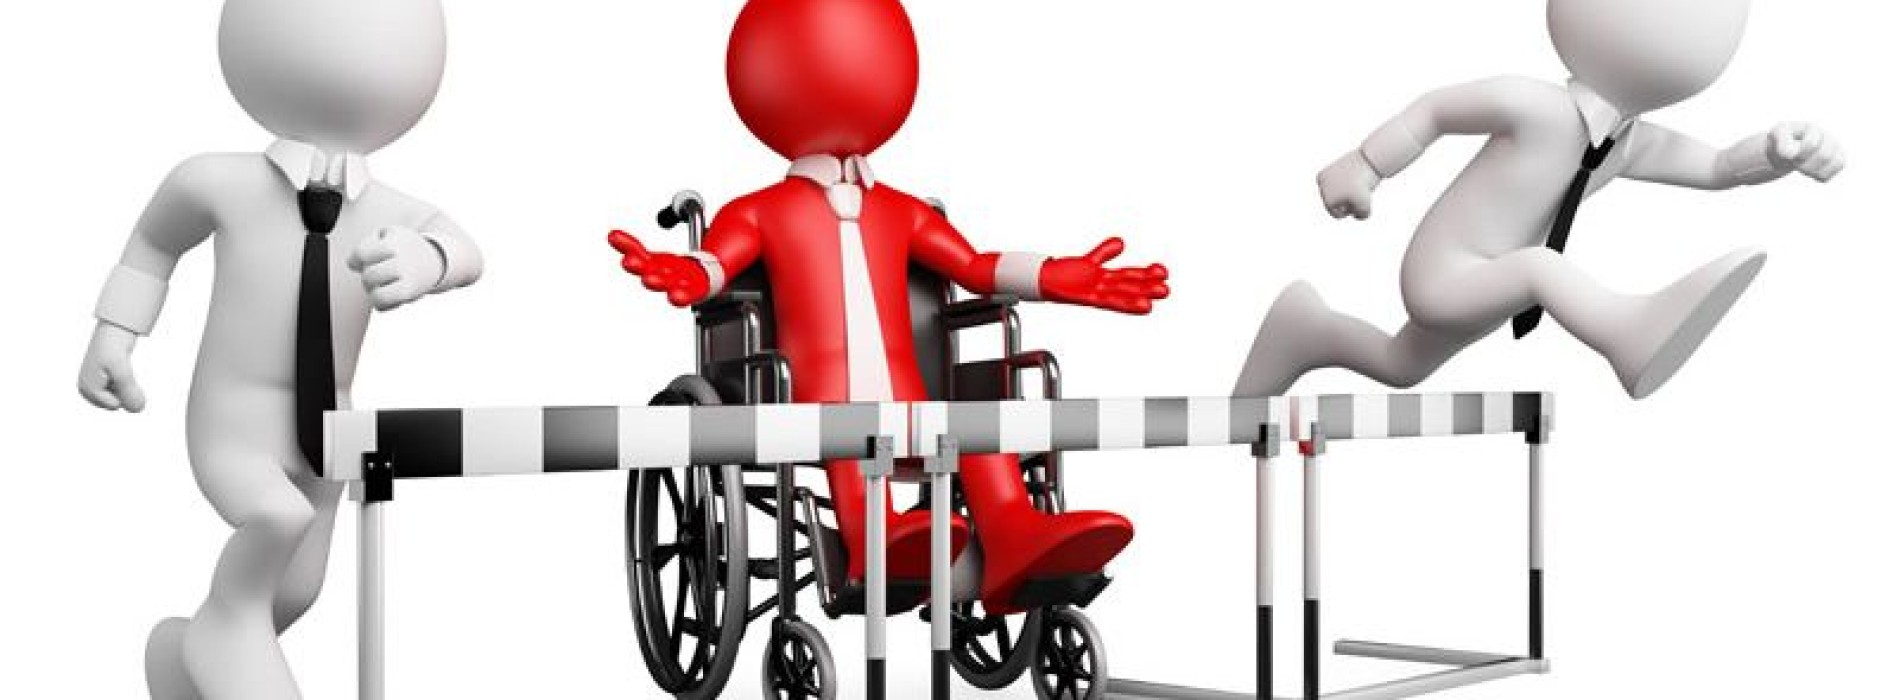 Disability Is Other Segregation >> Disability Discrimination Why Does It Still Happen Today